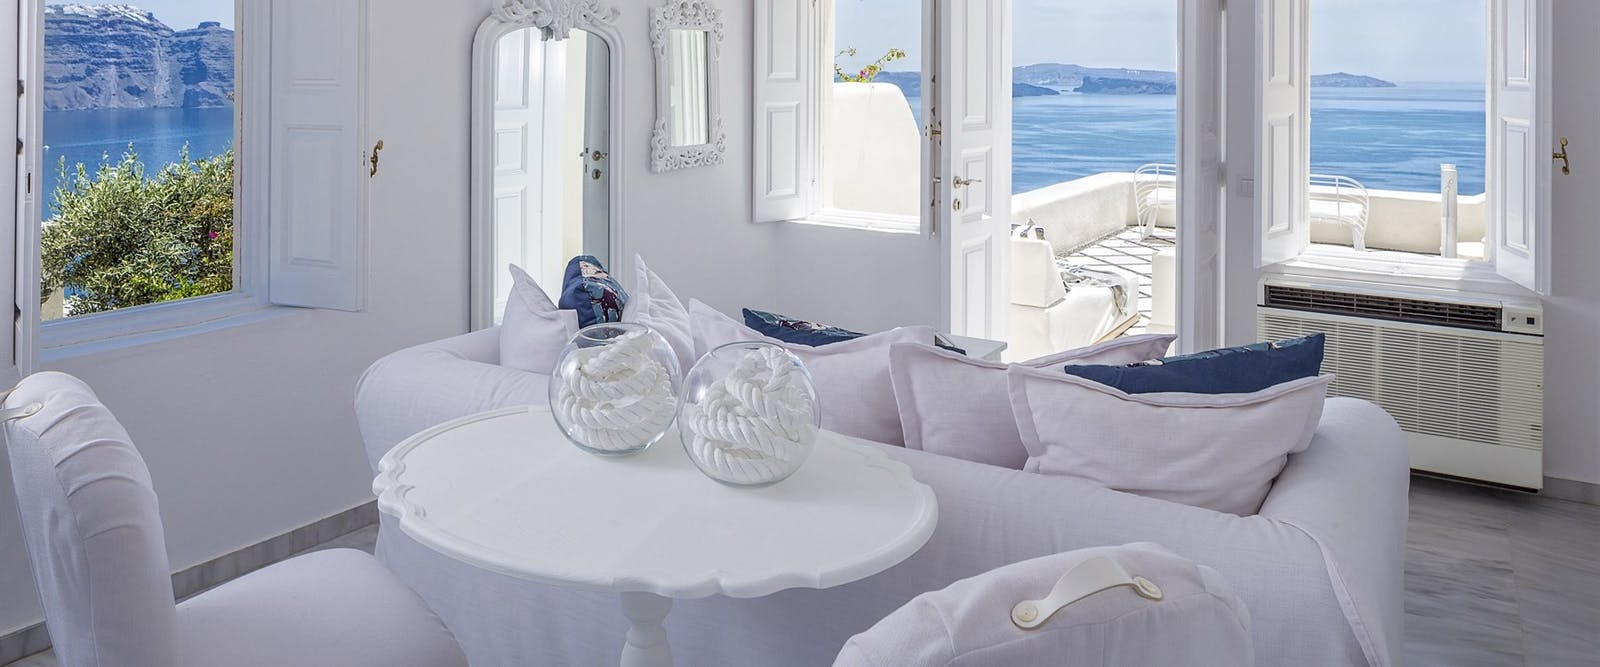 Suite Living Room at Canaves Oia Hotel, Santorini, Greece